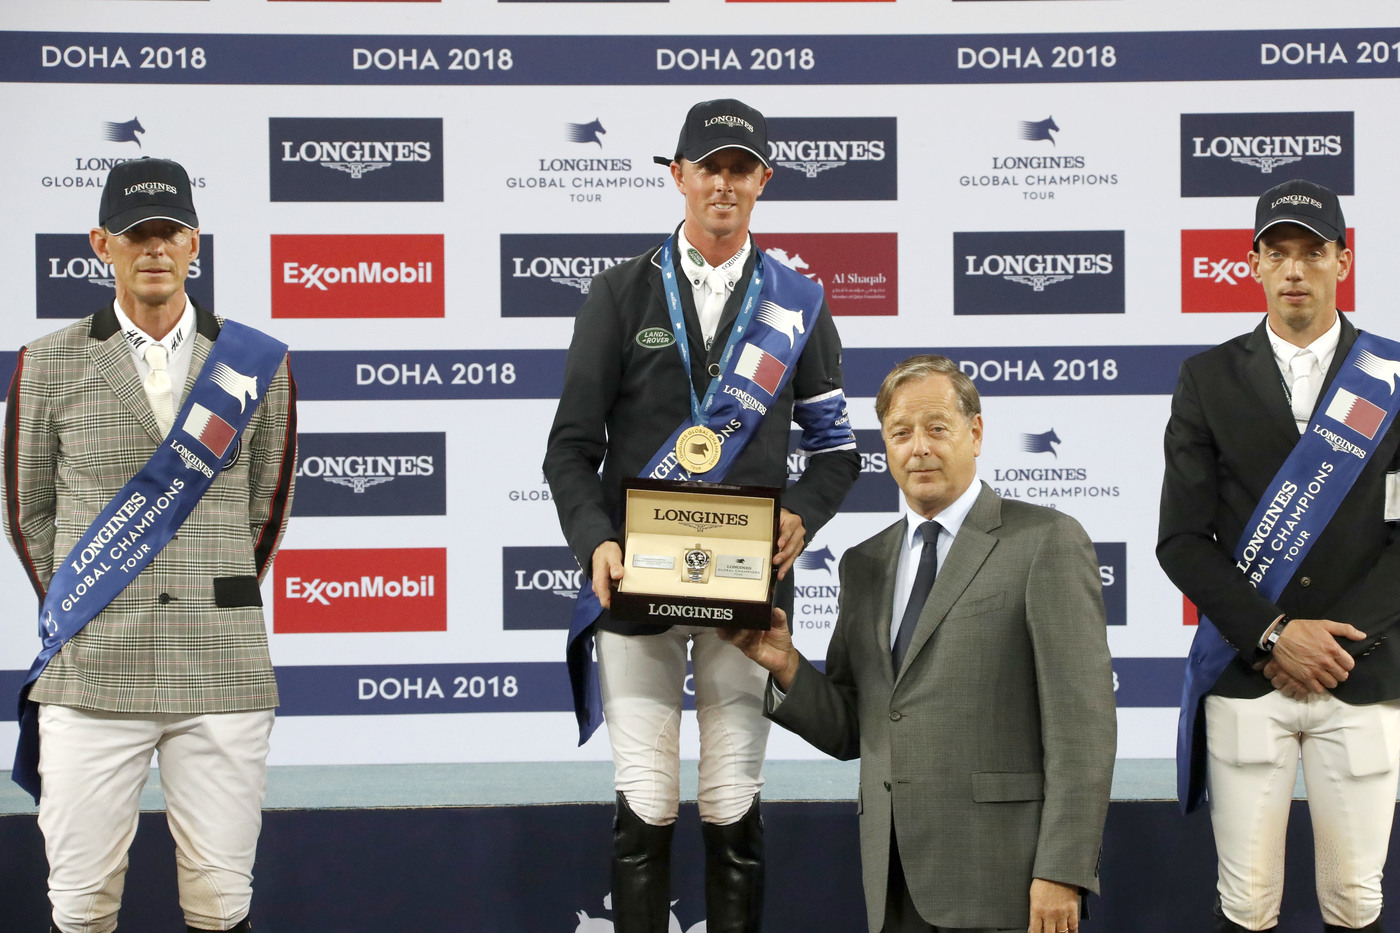 Longines Show Jumping Event: Ben Maher claimed stunning victory at the 2018 Longines Global Champions Tour of Doha 1